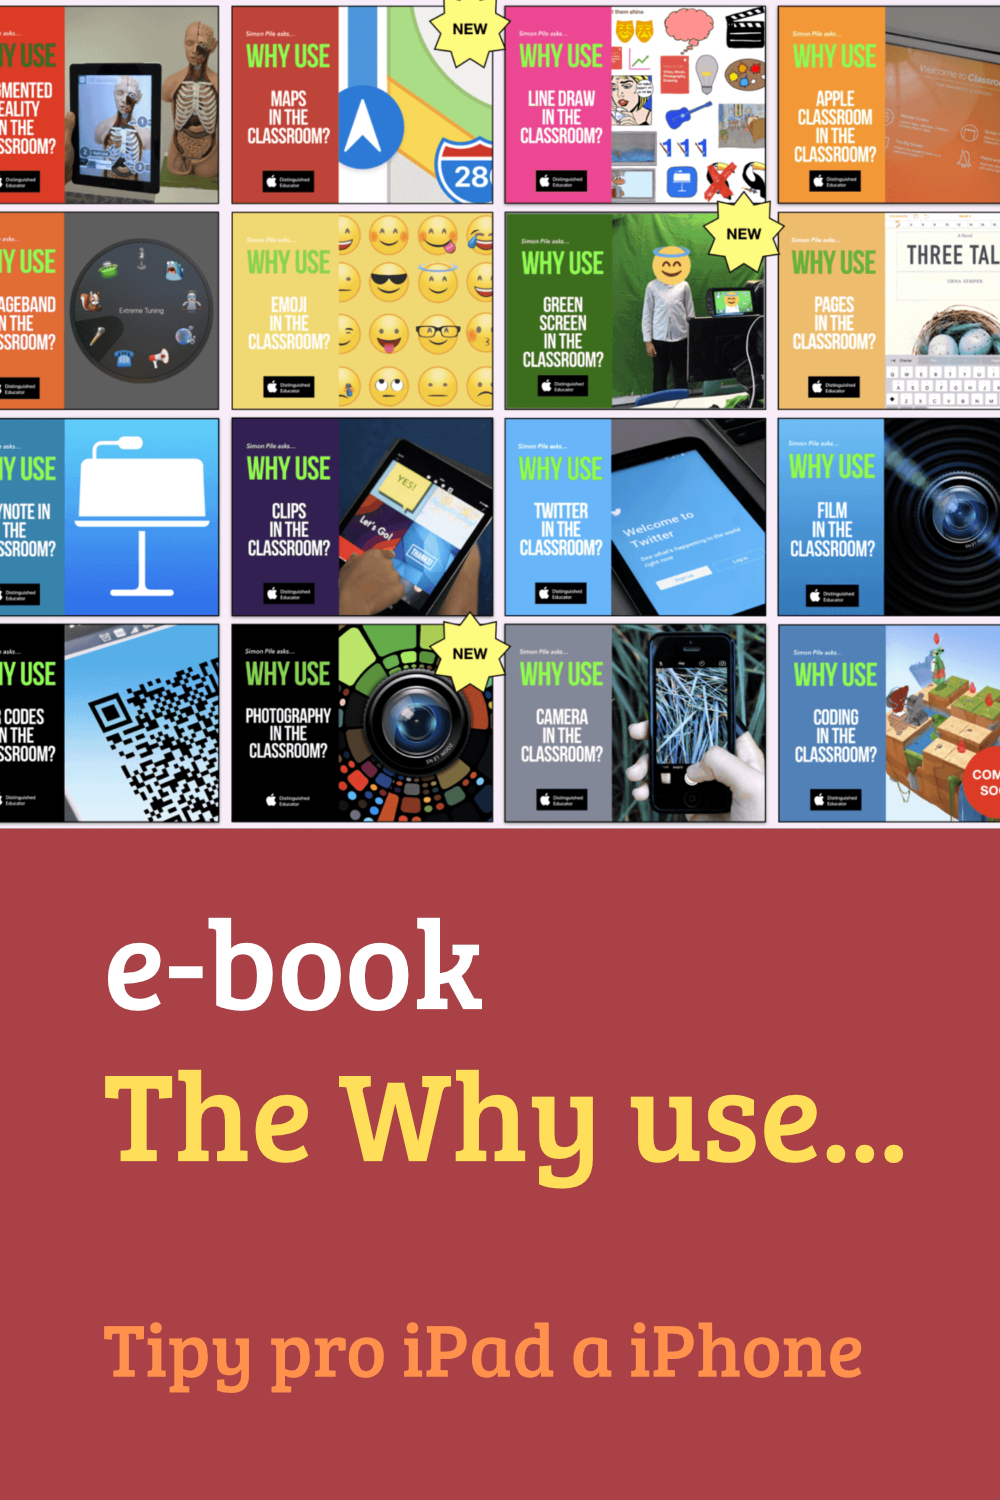 The Why use...